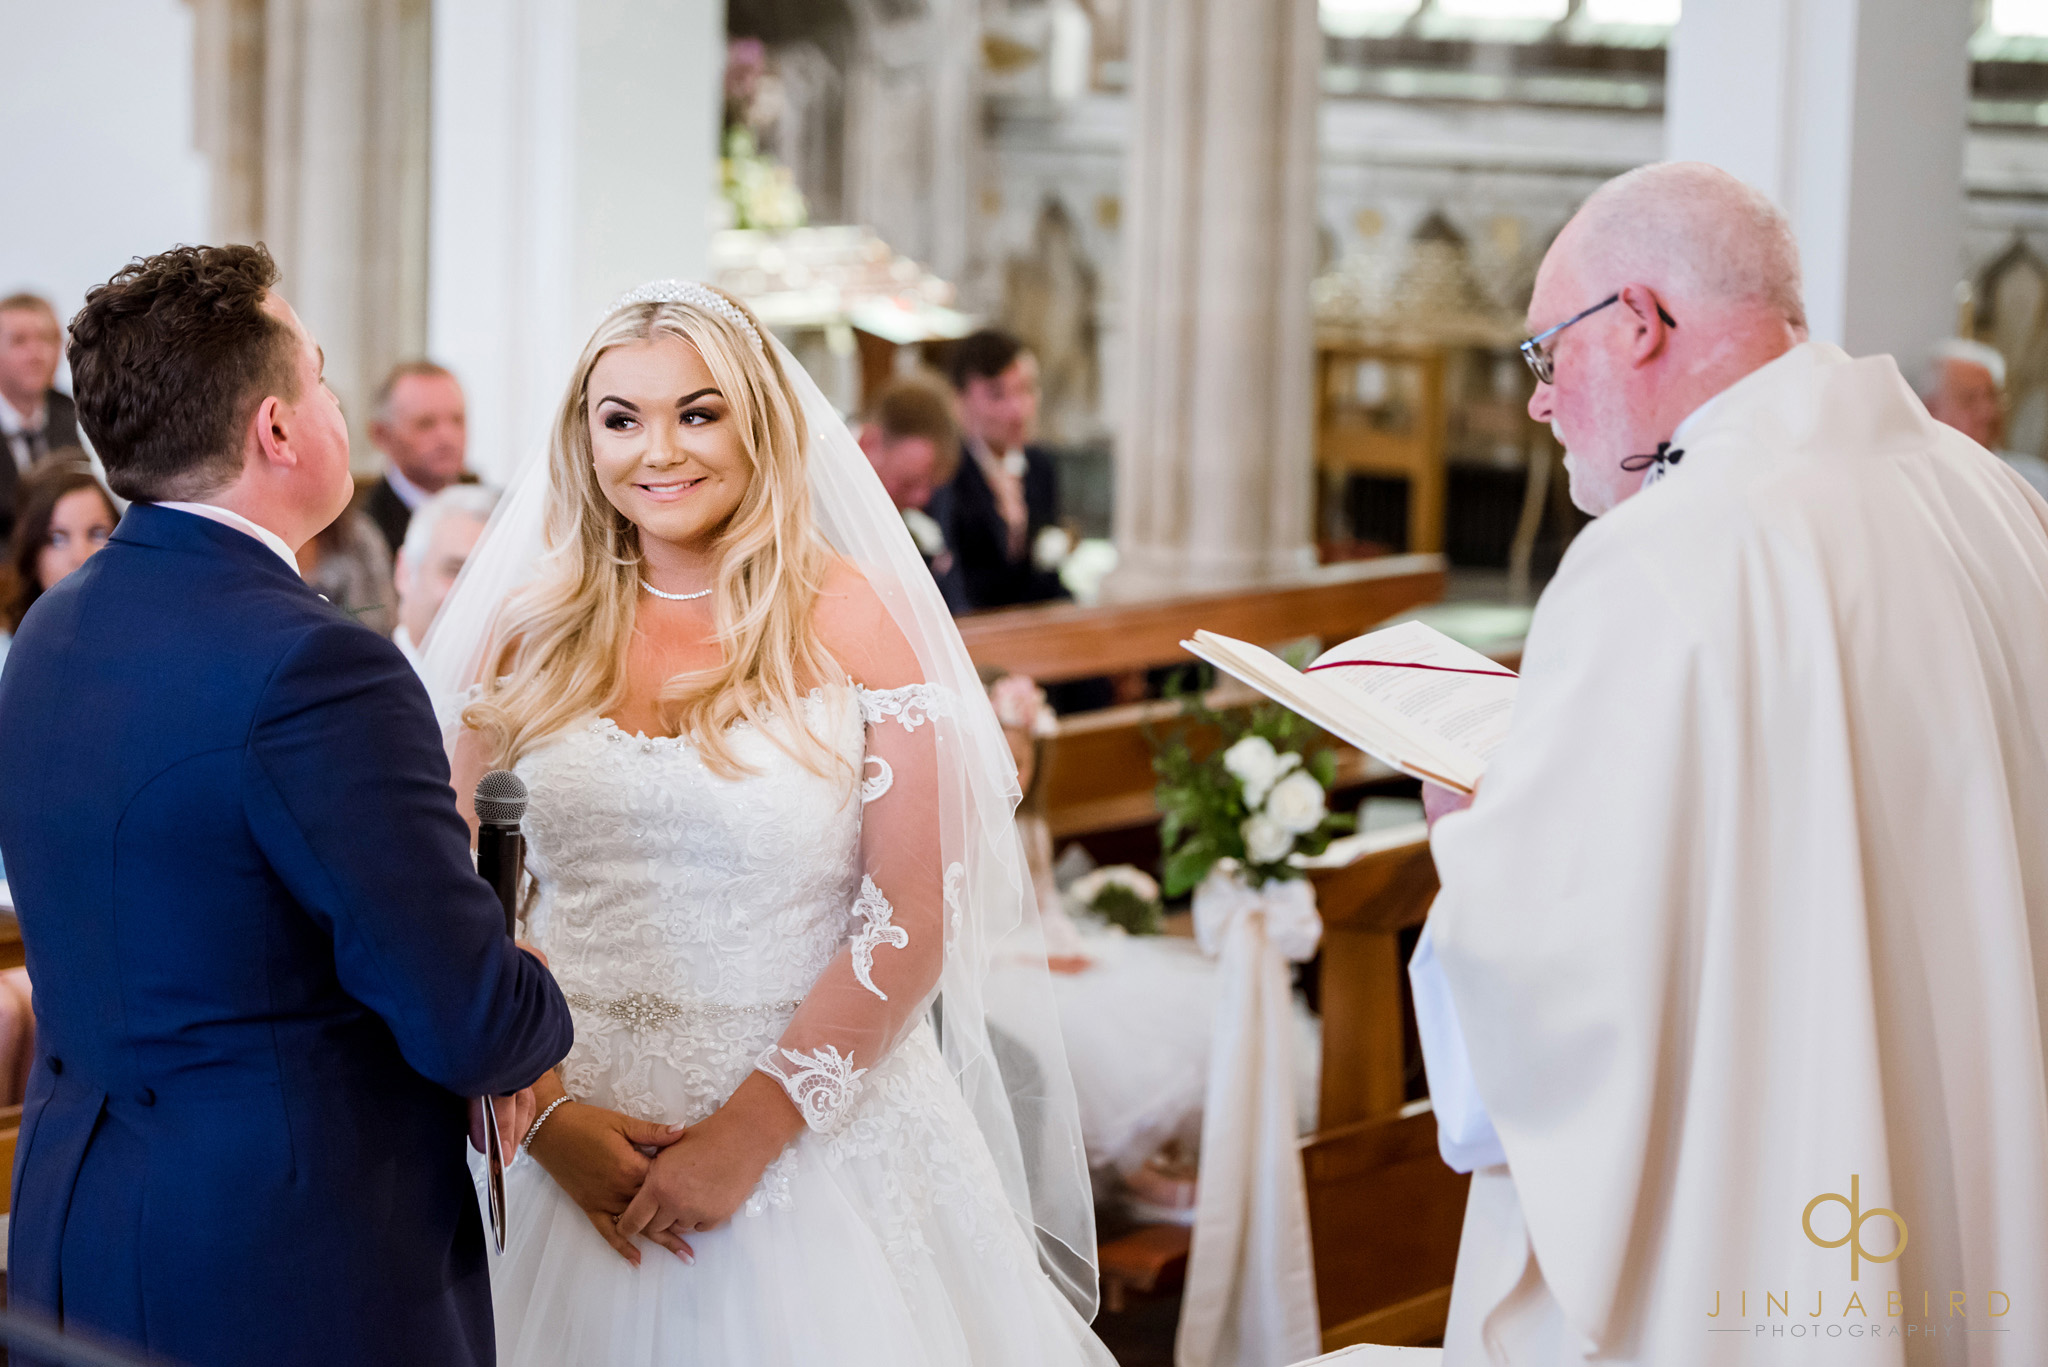 wedding at st-josephs church gerrards cross